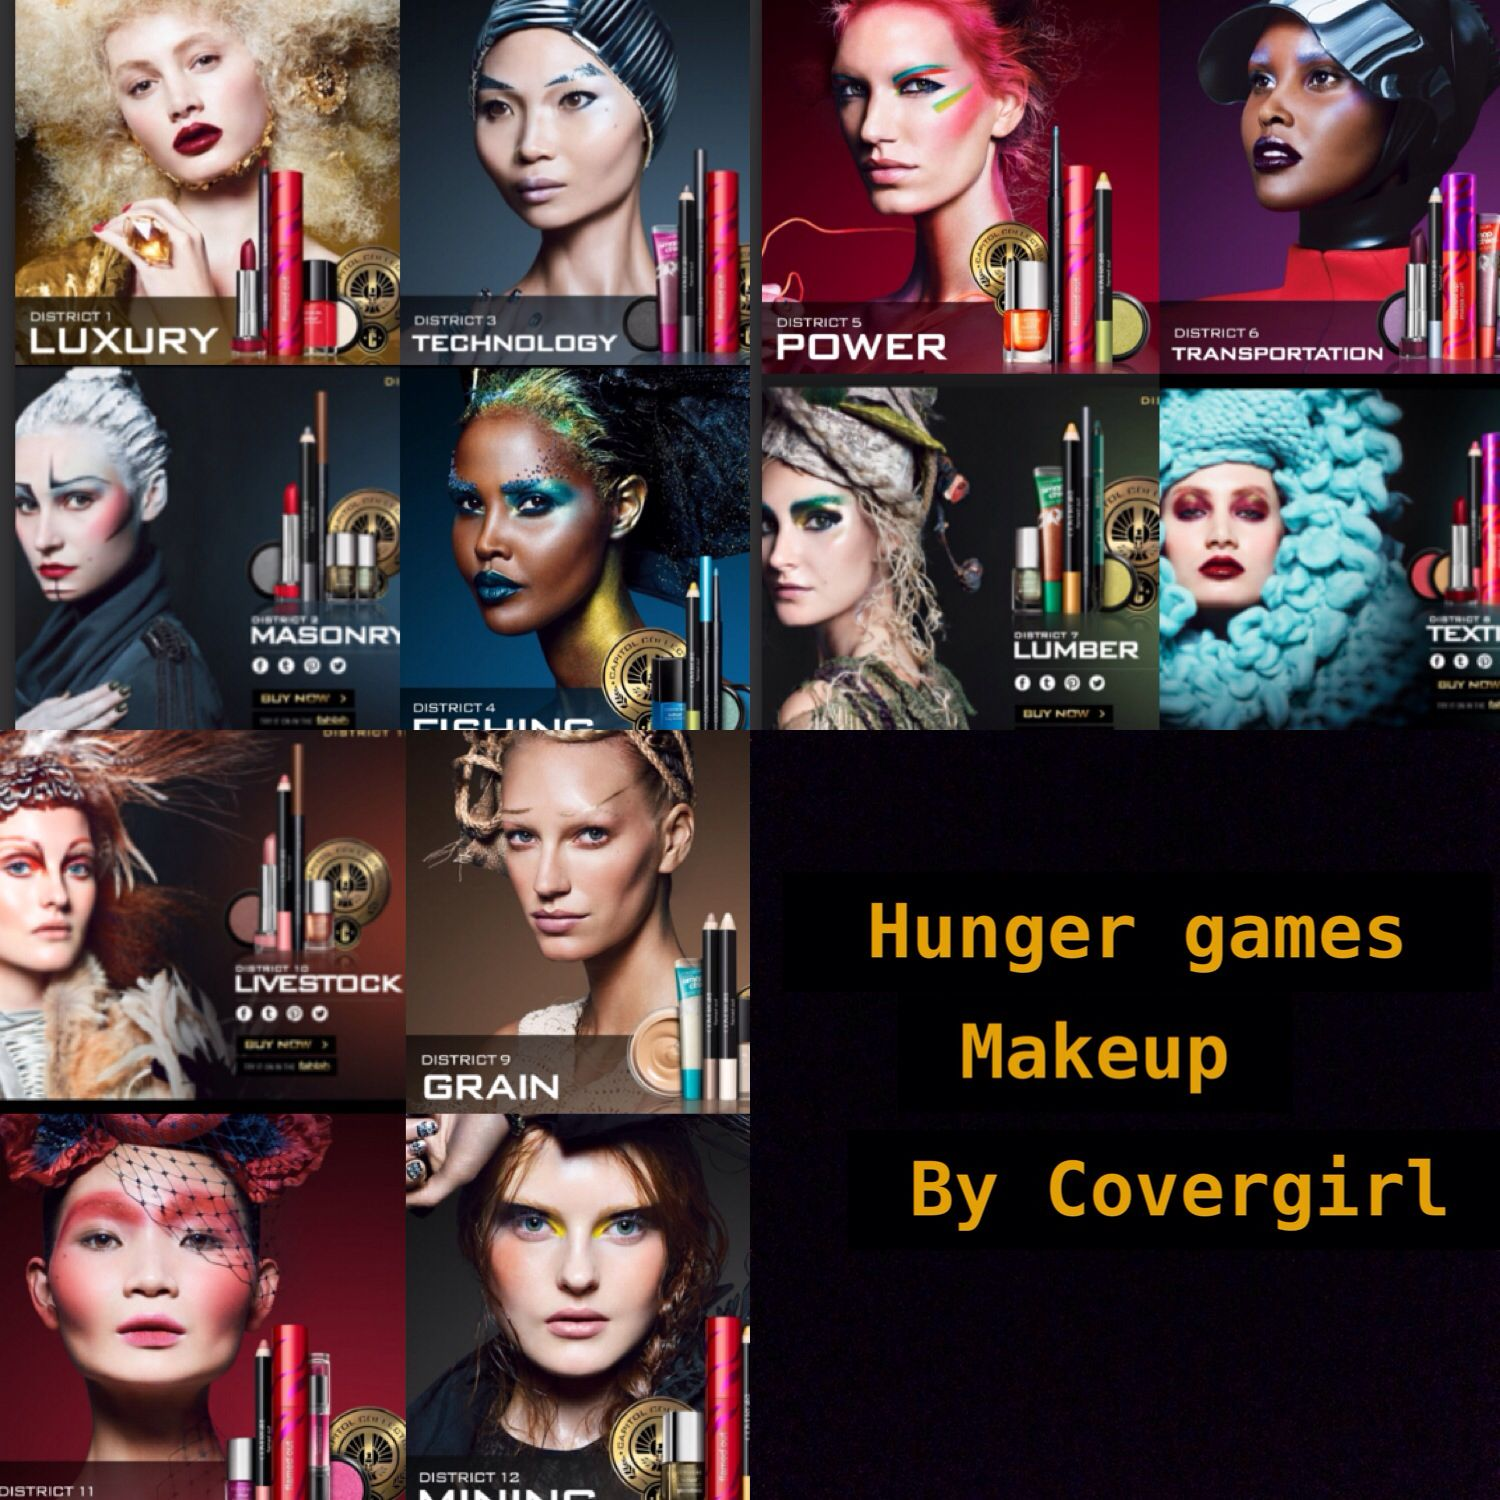 Covergirl Capitol Collection Glosstinis For Catching: Hunger Games Makeup! From Covergirl